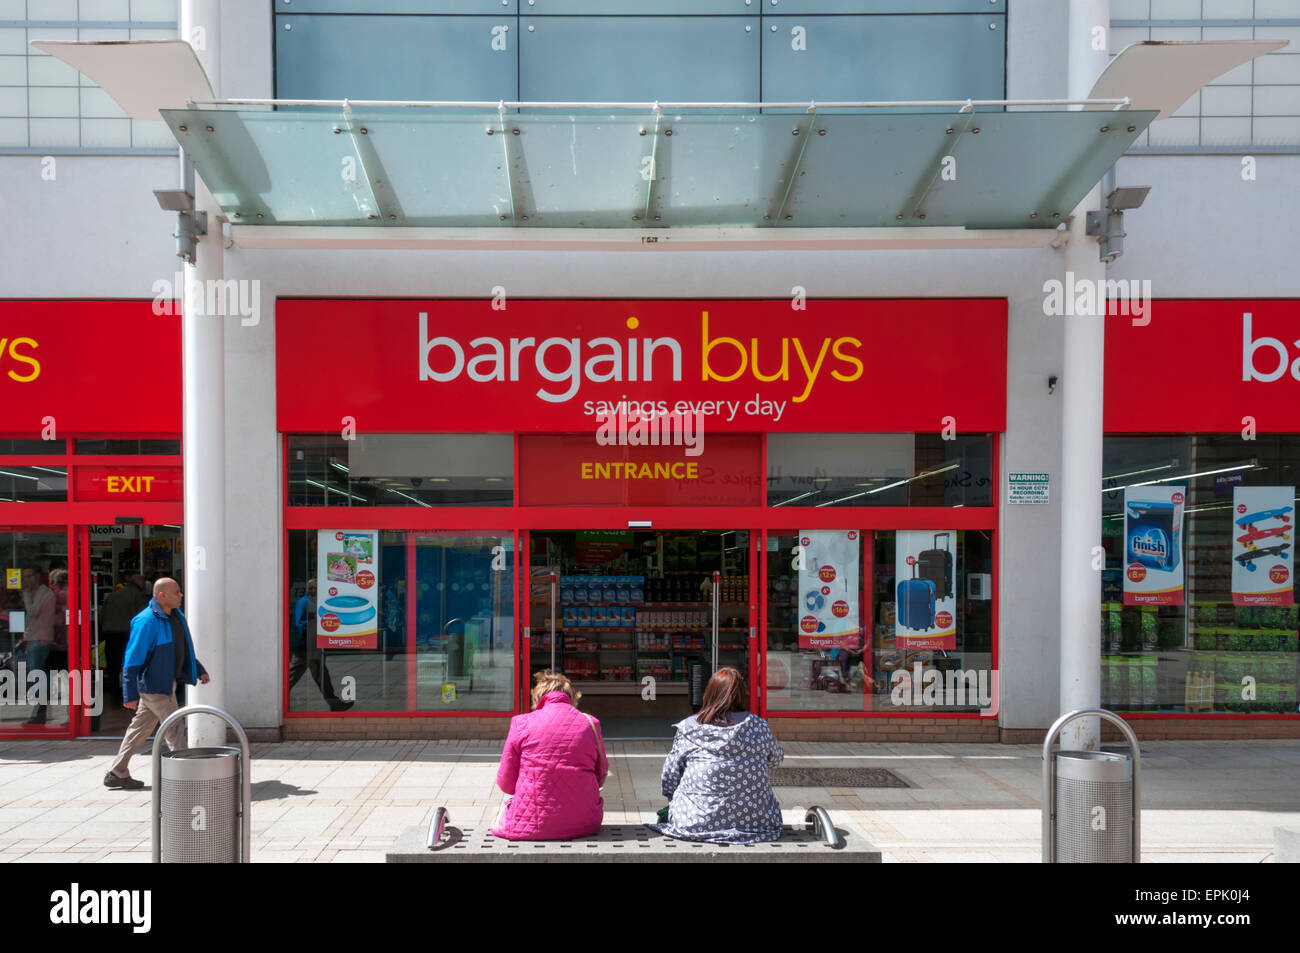 A branch of Bargain Buys in King's Lynn. - Stock Image